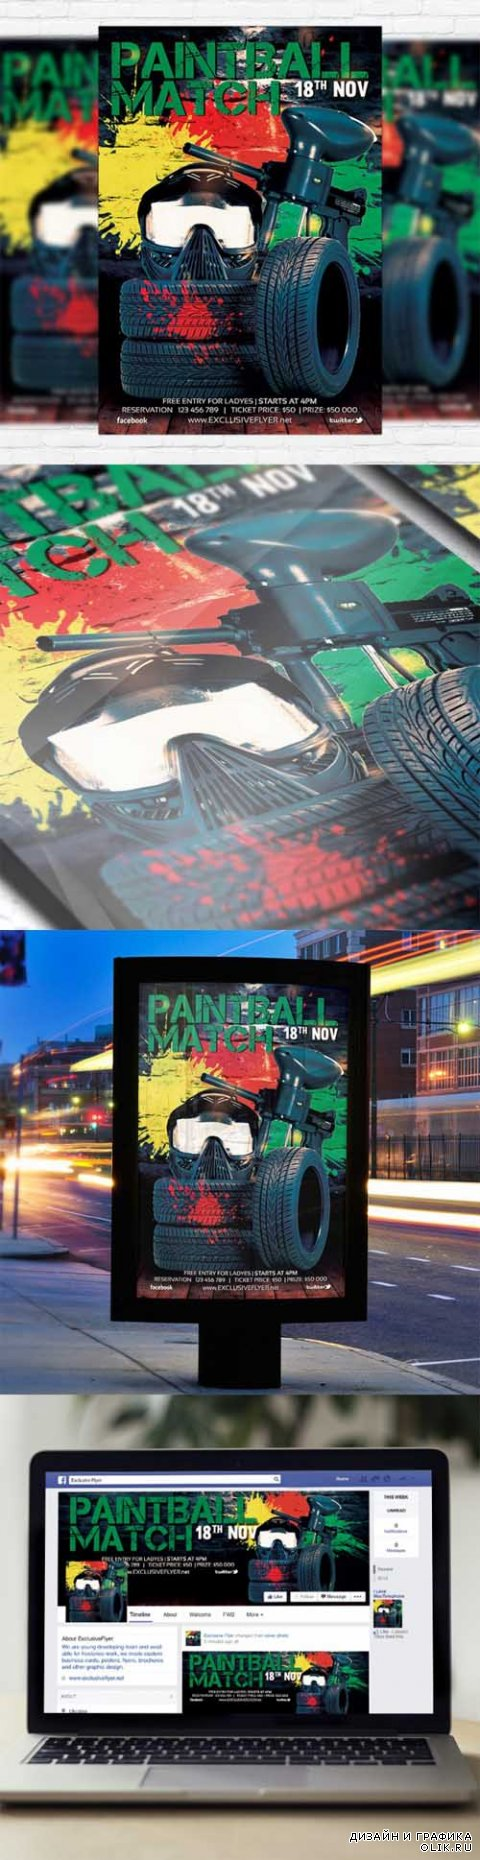 Flyer Template - Paintball Match + Facebook Cover